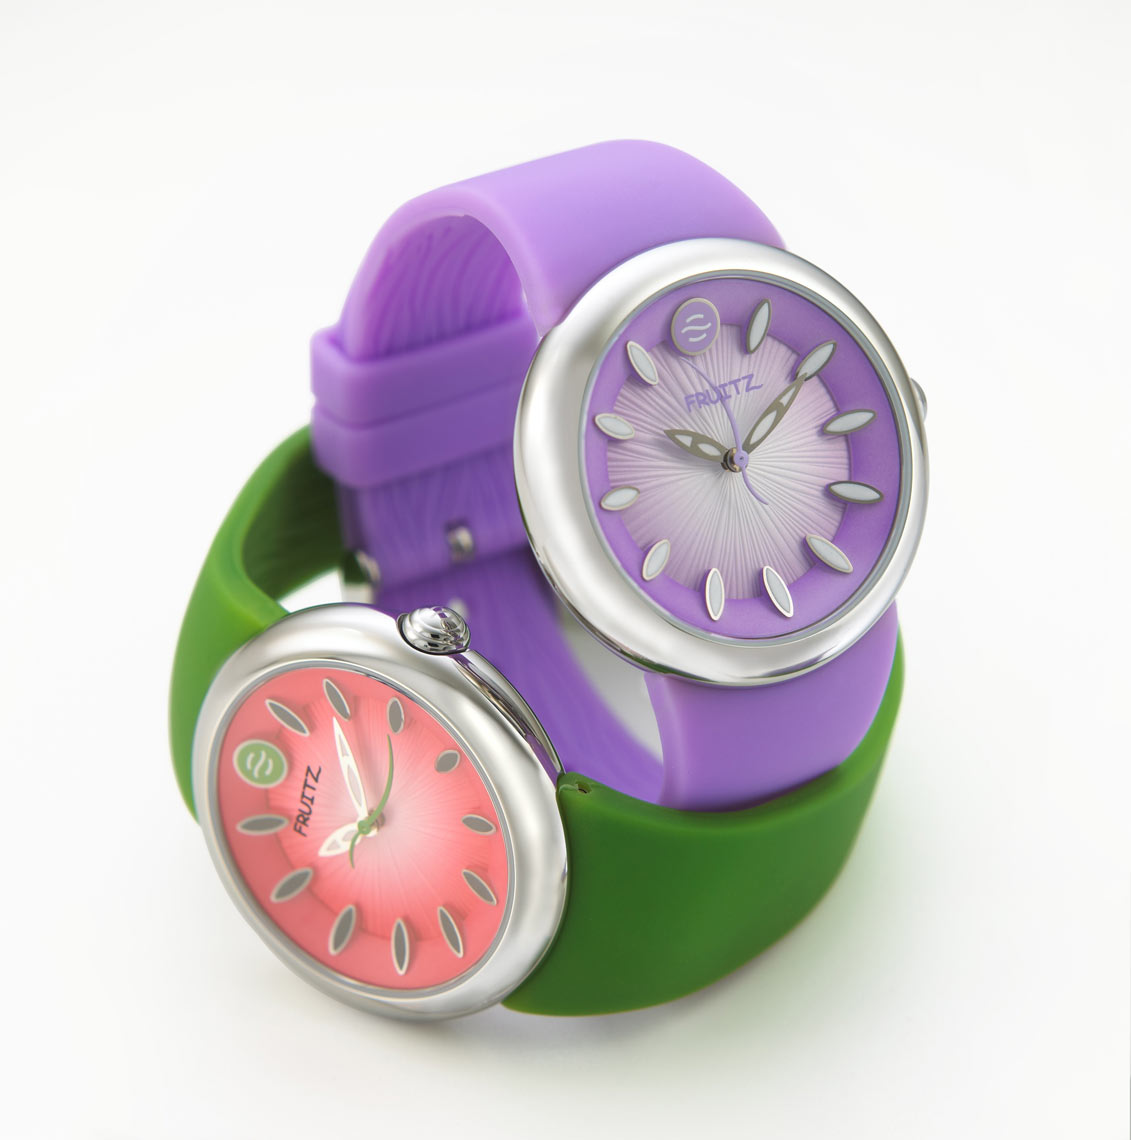 Fruitz-Watches/purple,green/product photography